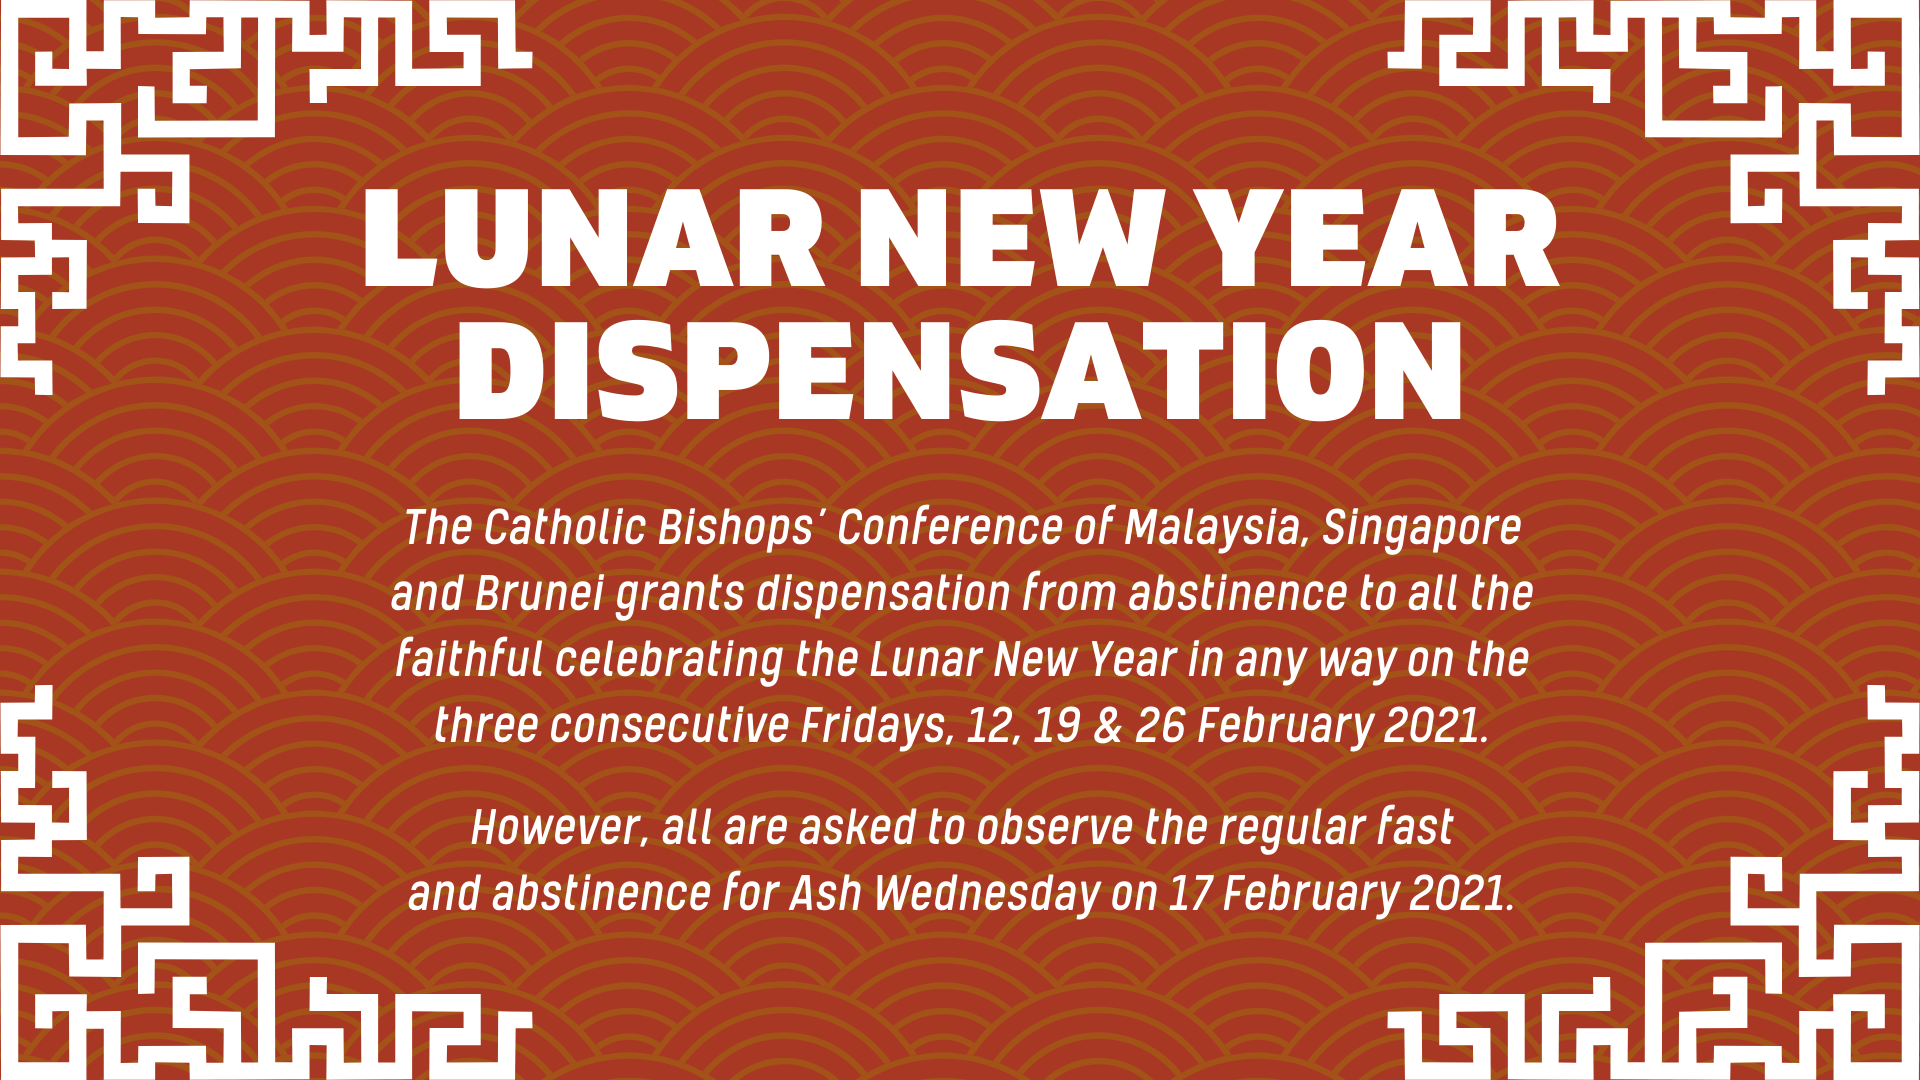 CNY Dispensation Message